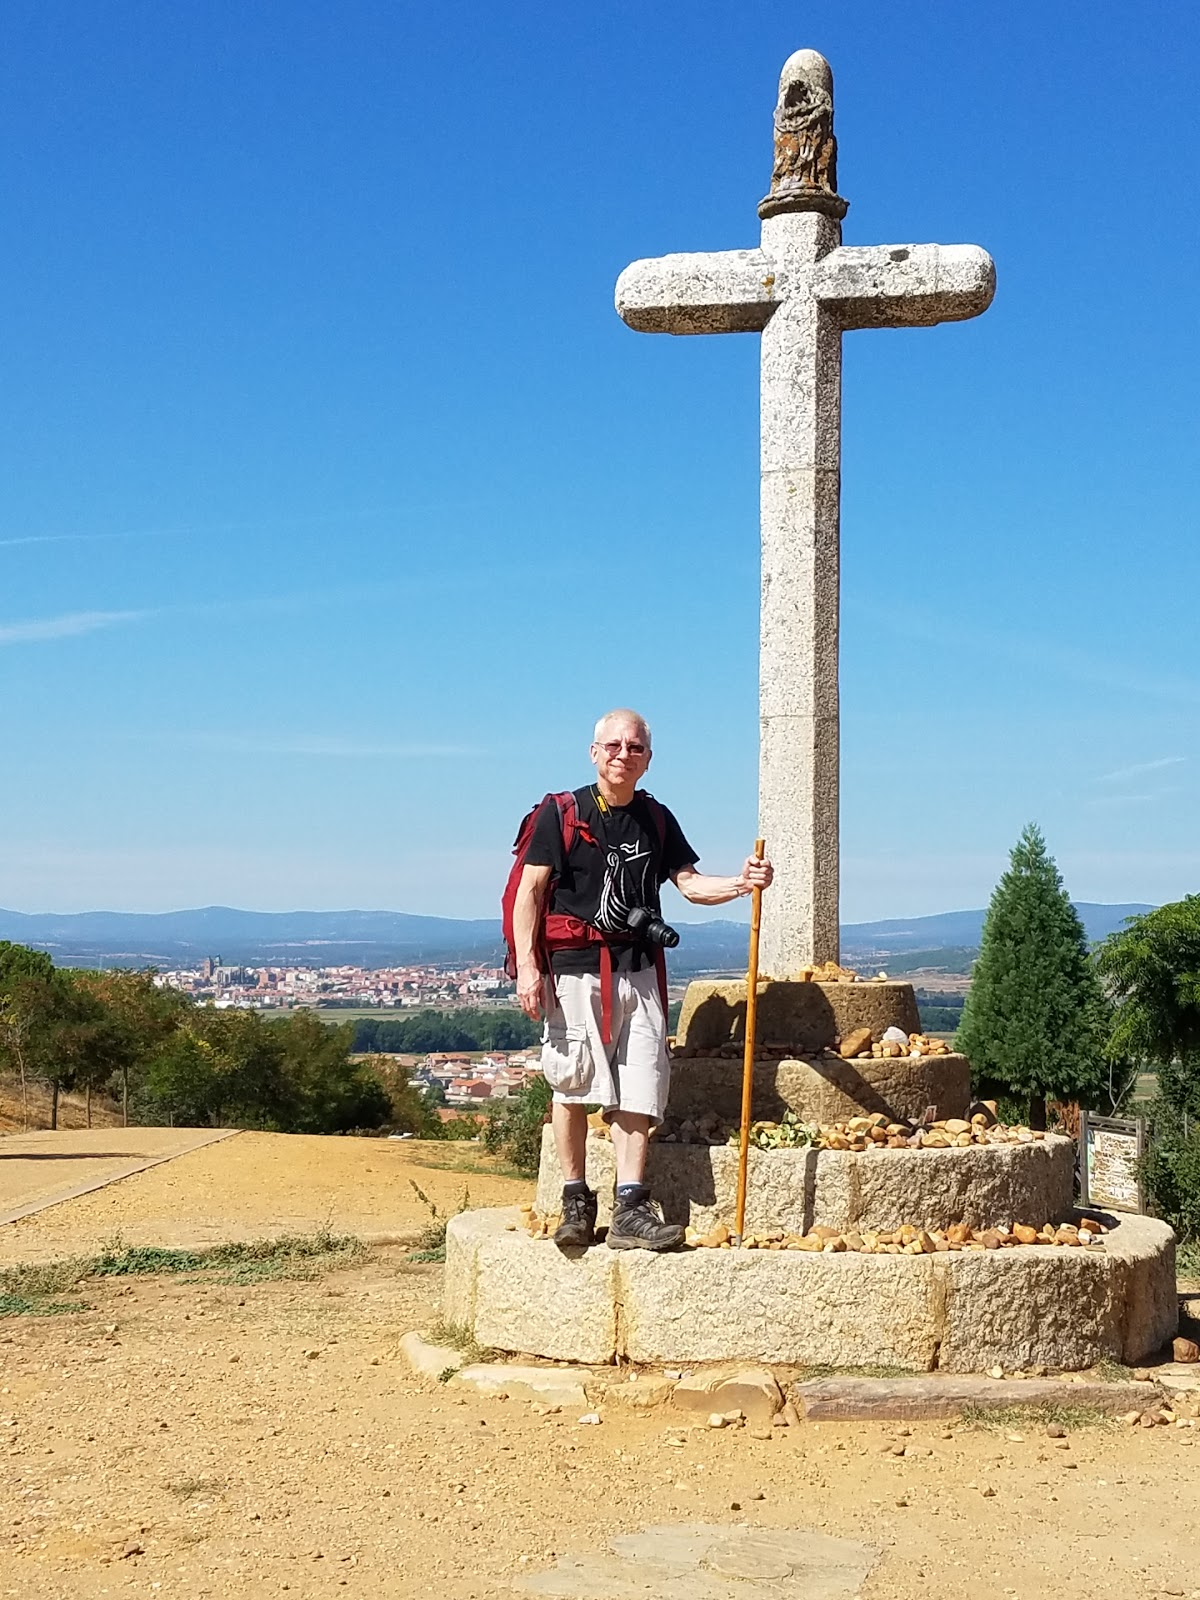 Cruceiro Santo Toribio or Cross of Saint Toribio commemorates the location where the fifth-century Bishop Toribio of Astorga fell to his knees in a final farewell after having been banished from the village.